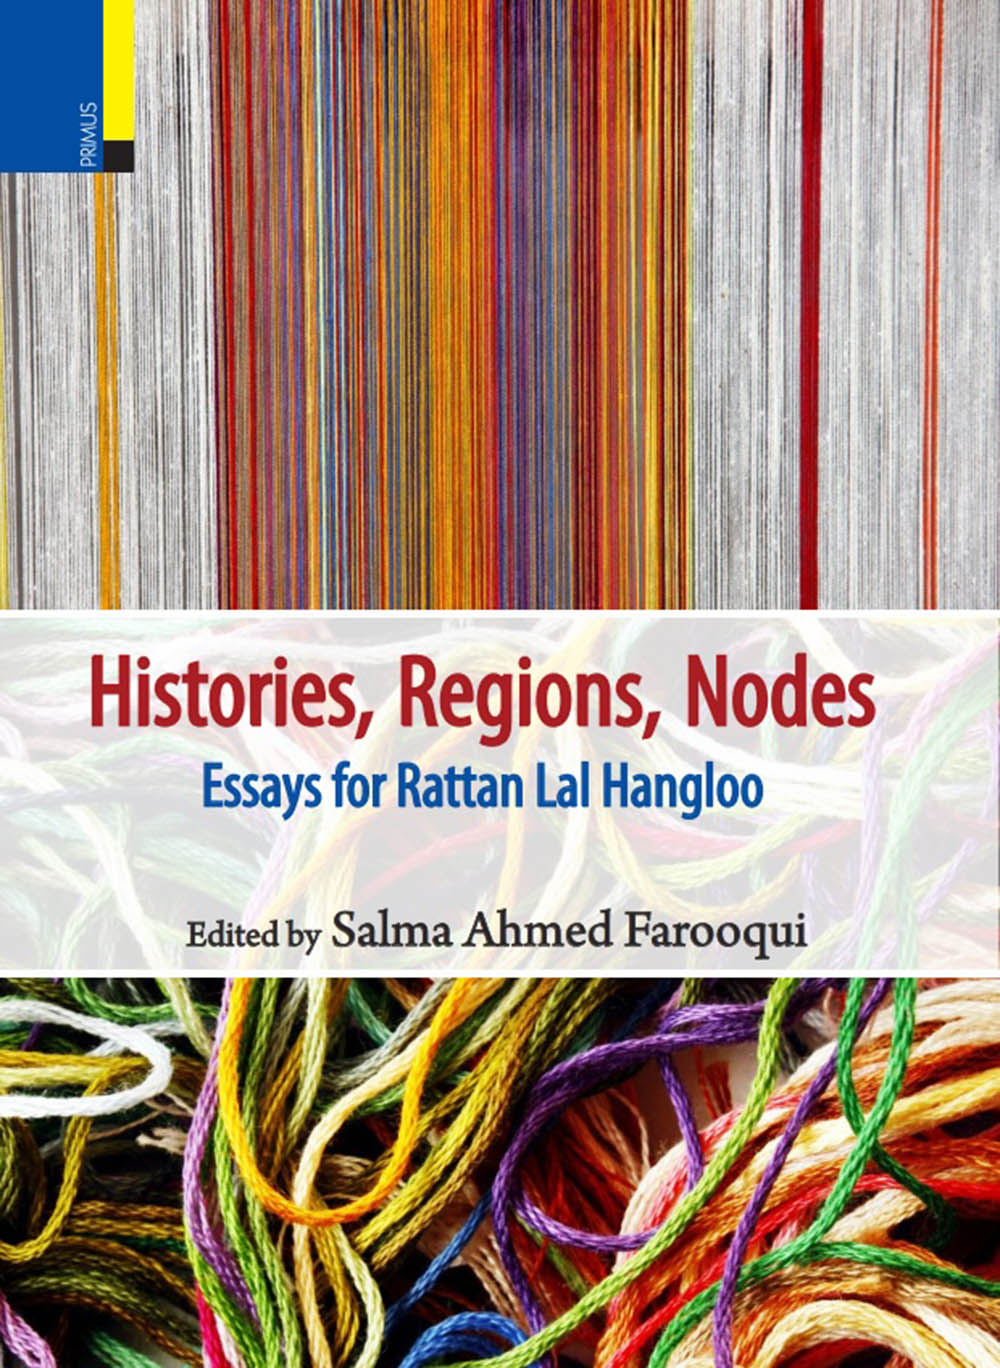 Histories, Regions, Nodes: Essays for Rattan Lal Hangloo